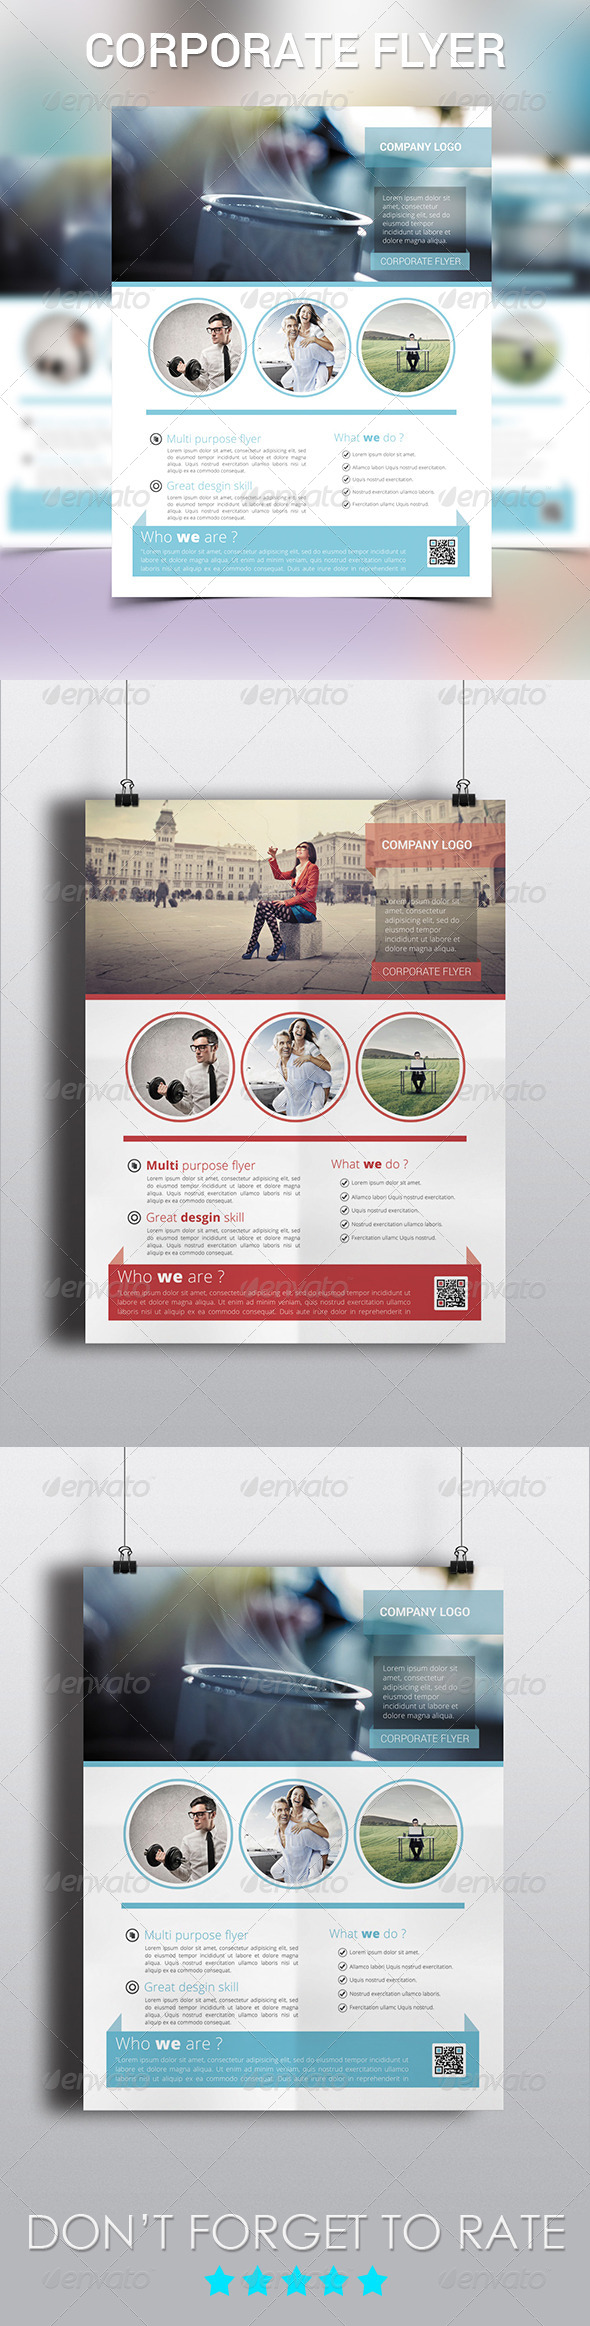 GraphicRiver Corporate Flyer Template 6164560